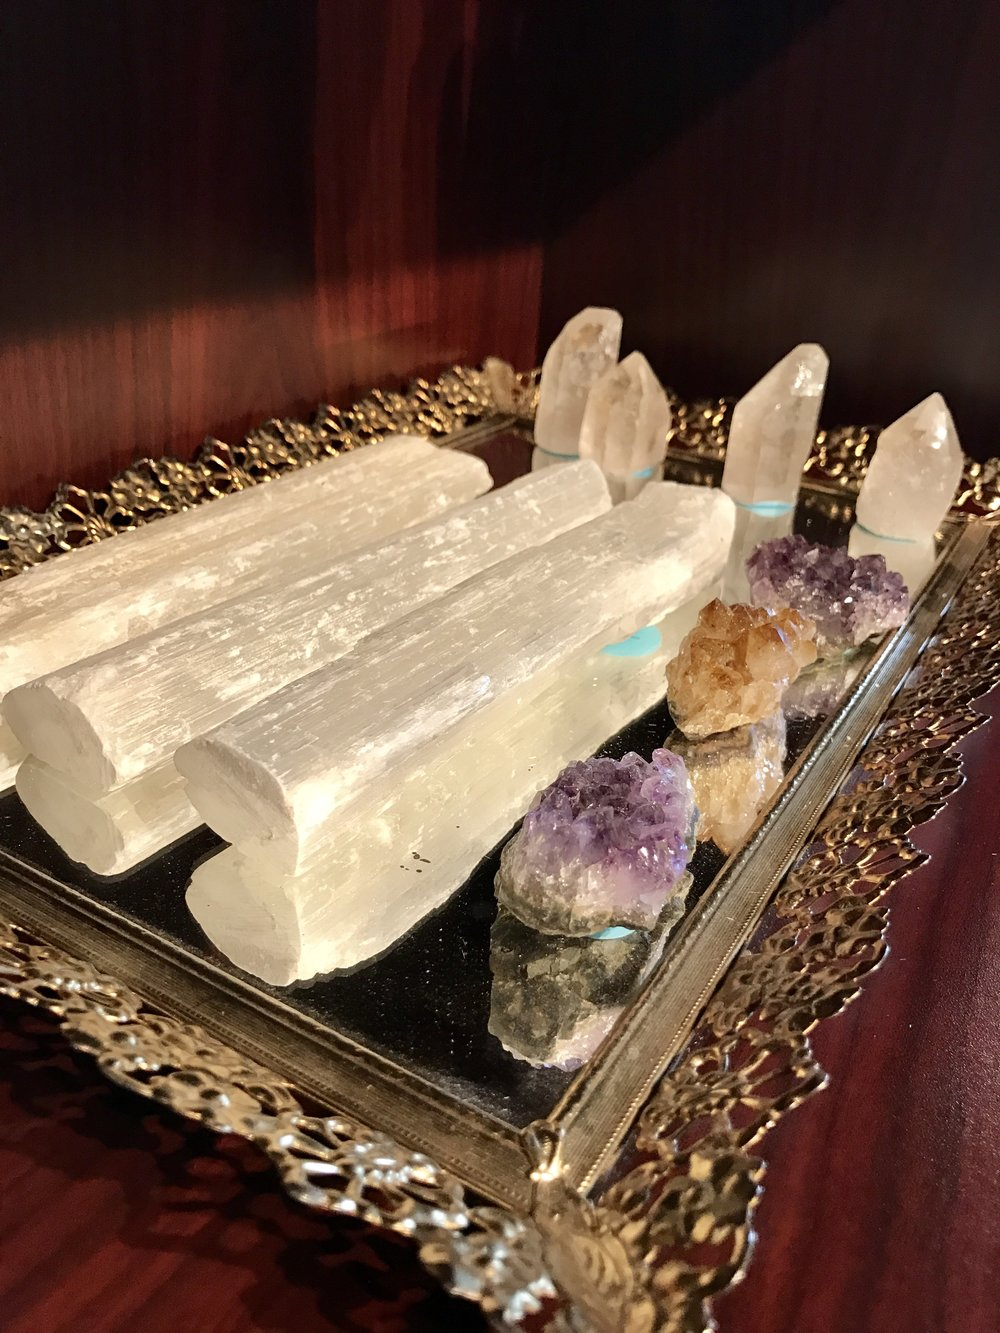 minerals, gems, crystals - selenite, clear quartz, citrine, amethyst